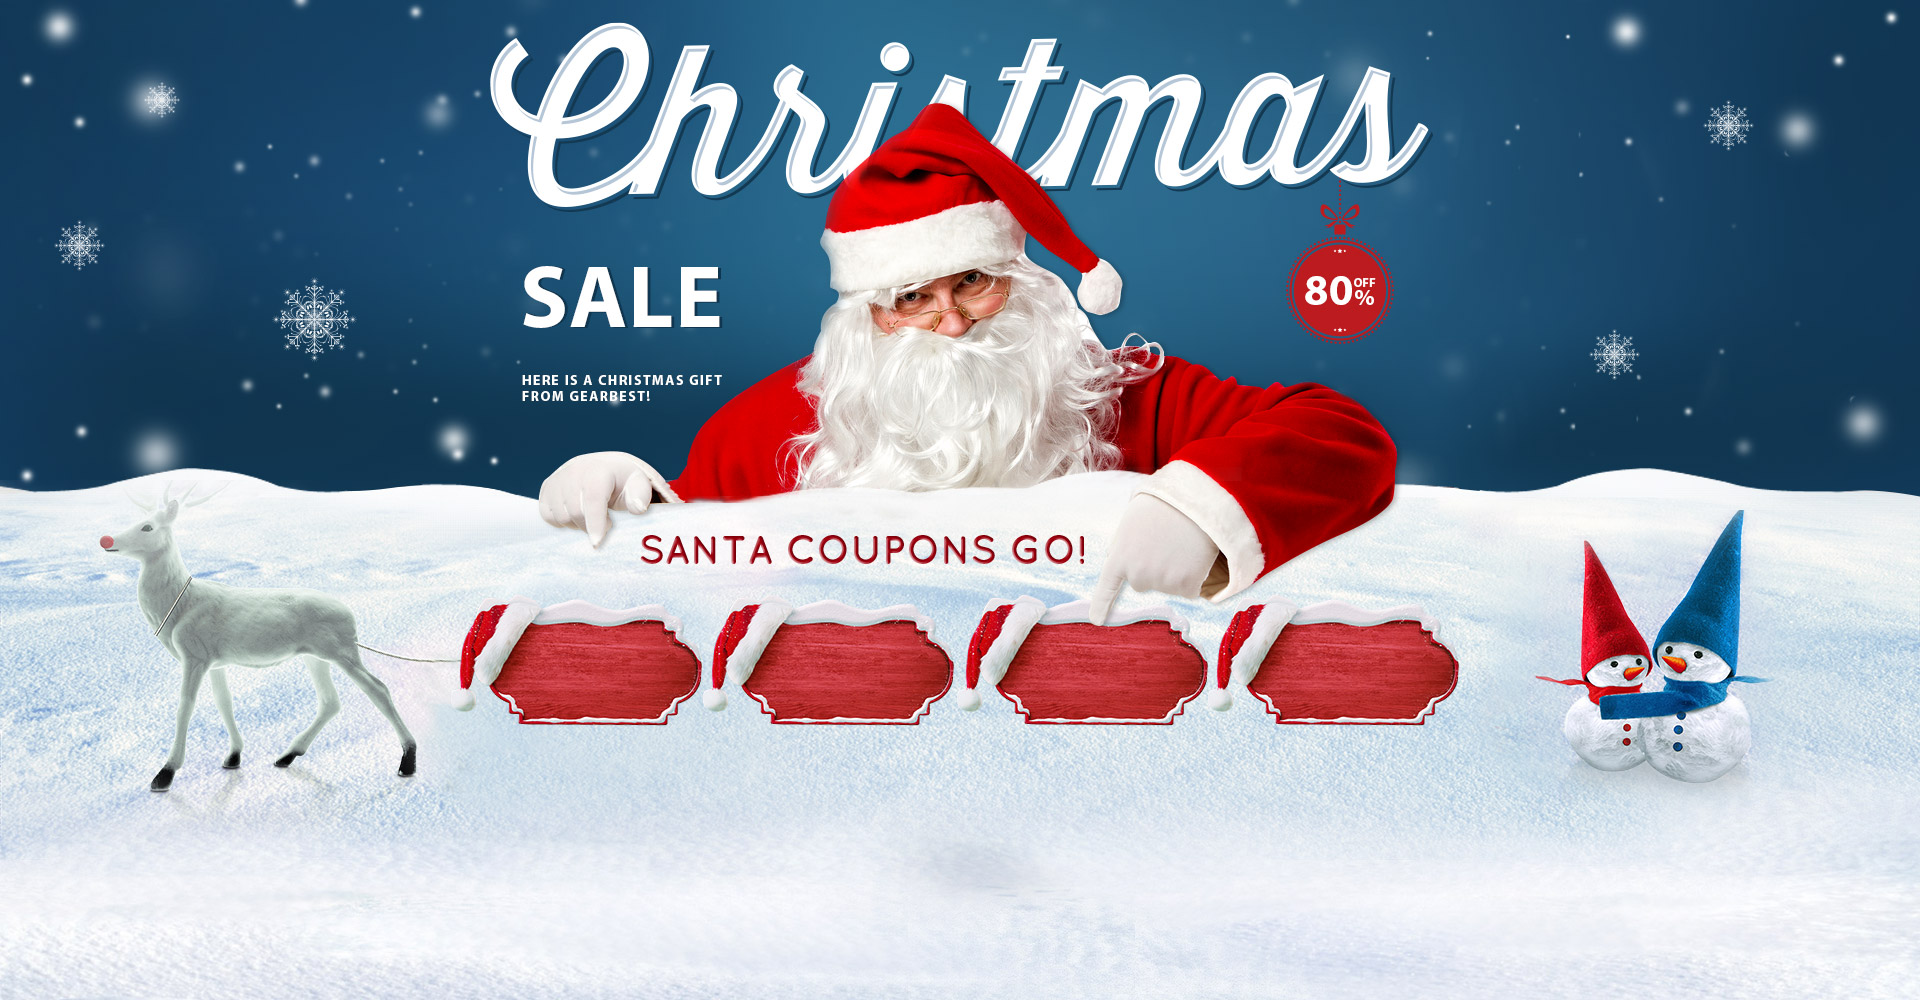 Xmas Christmas 2016 coupons and Deals